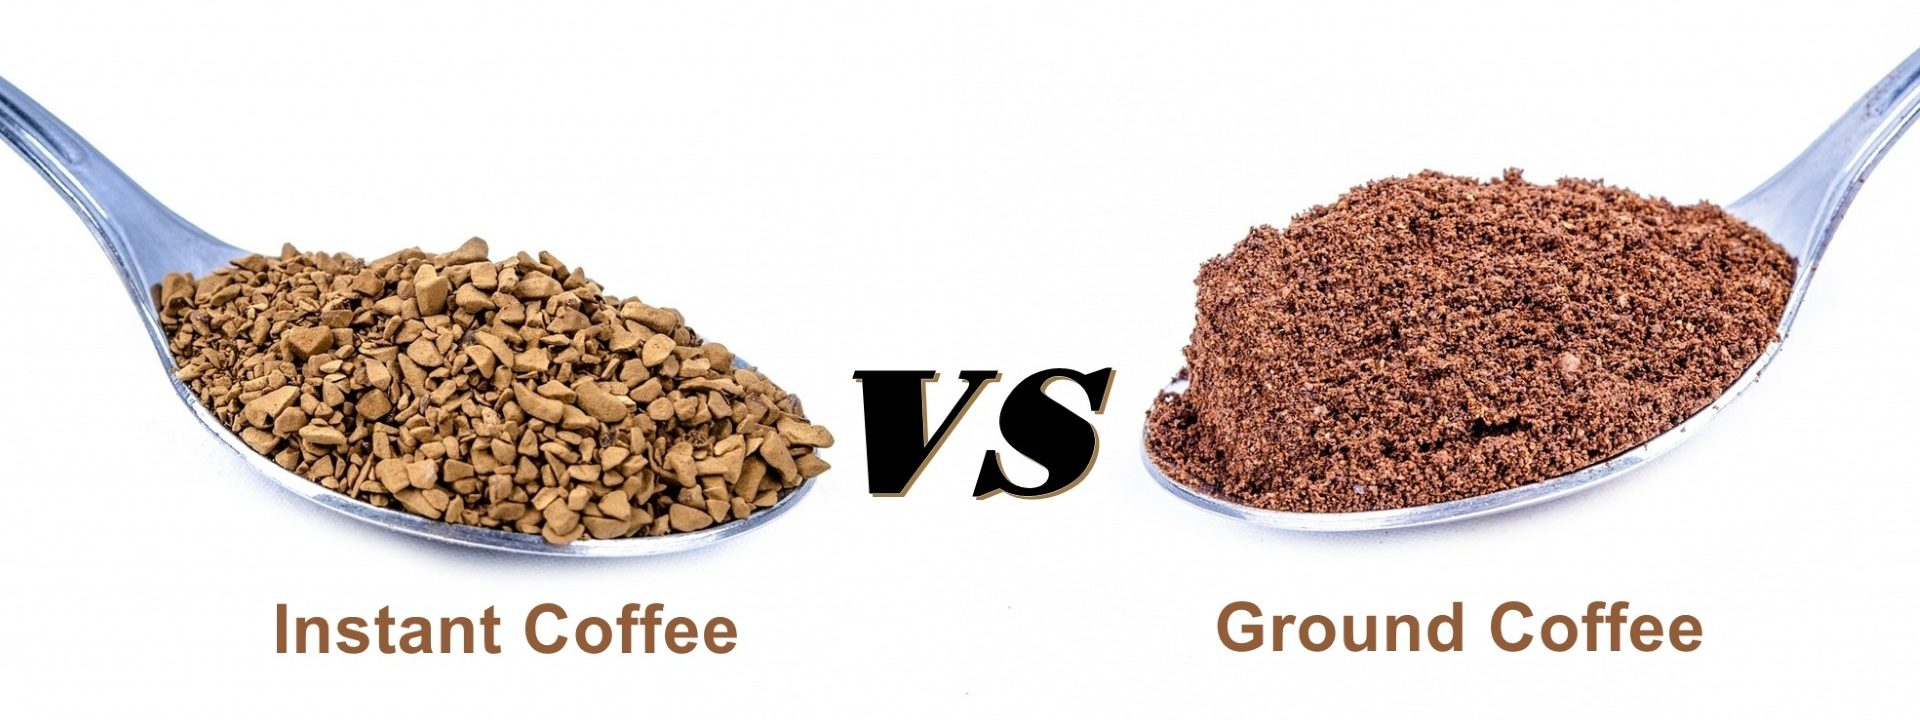 7 Most Important Differences Between Instant Coffee and Ground Coffee that You Should Know